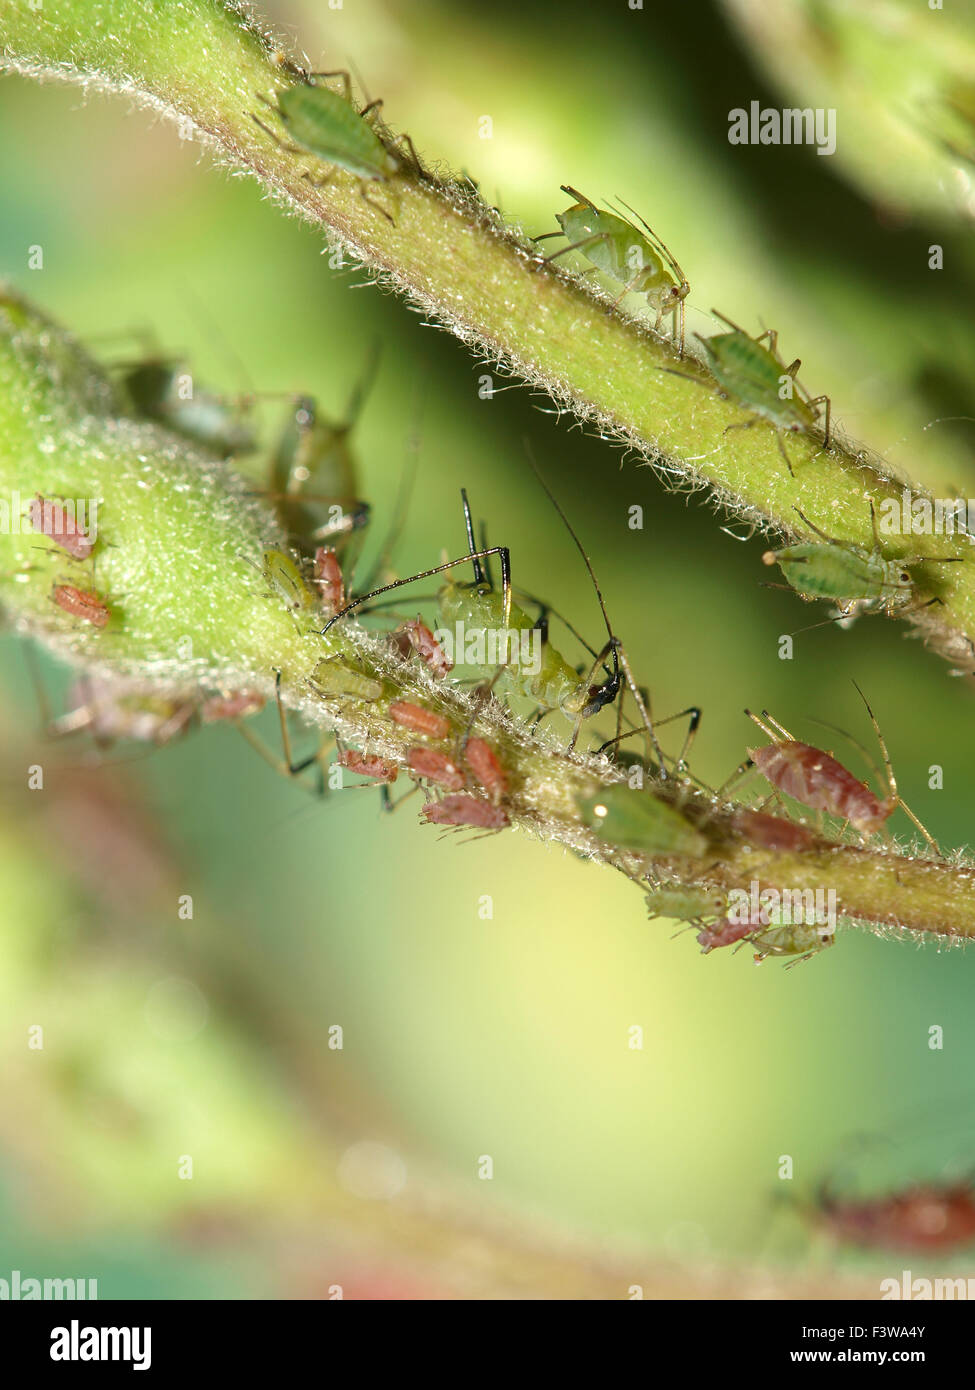 Aphids - Stock Image